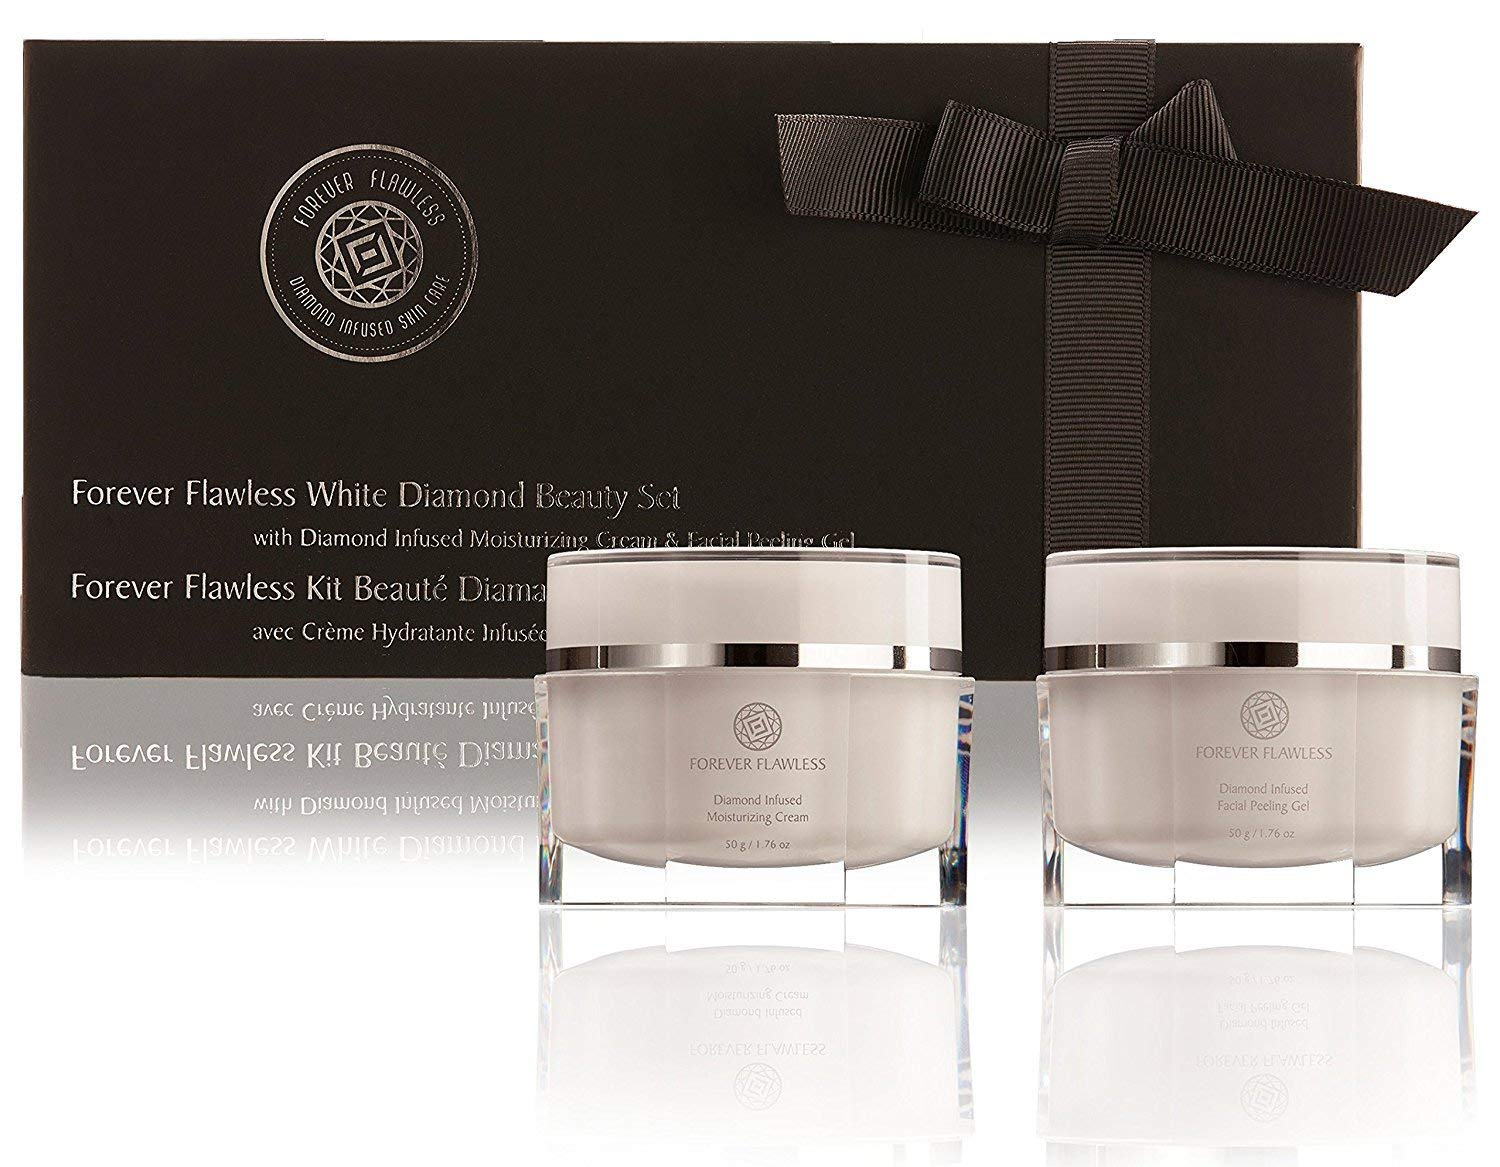 Amazon.com: Forever Flawless Facial Peeling Gel and Moisturizing Cream.Two-Step Face Treatment. SPA Exfoliation at Home and Optimal Hydration fora Flawless Look!: Beauty